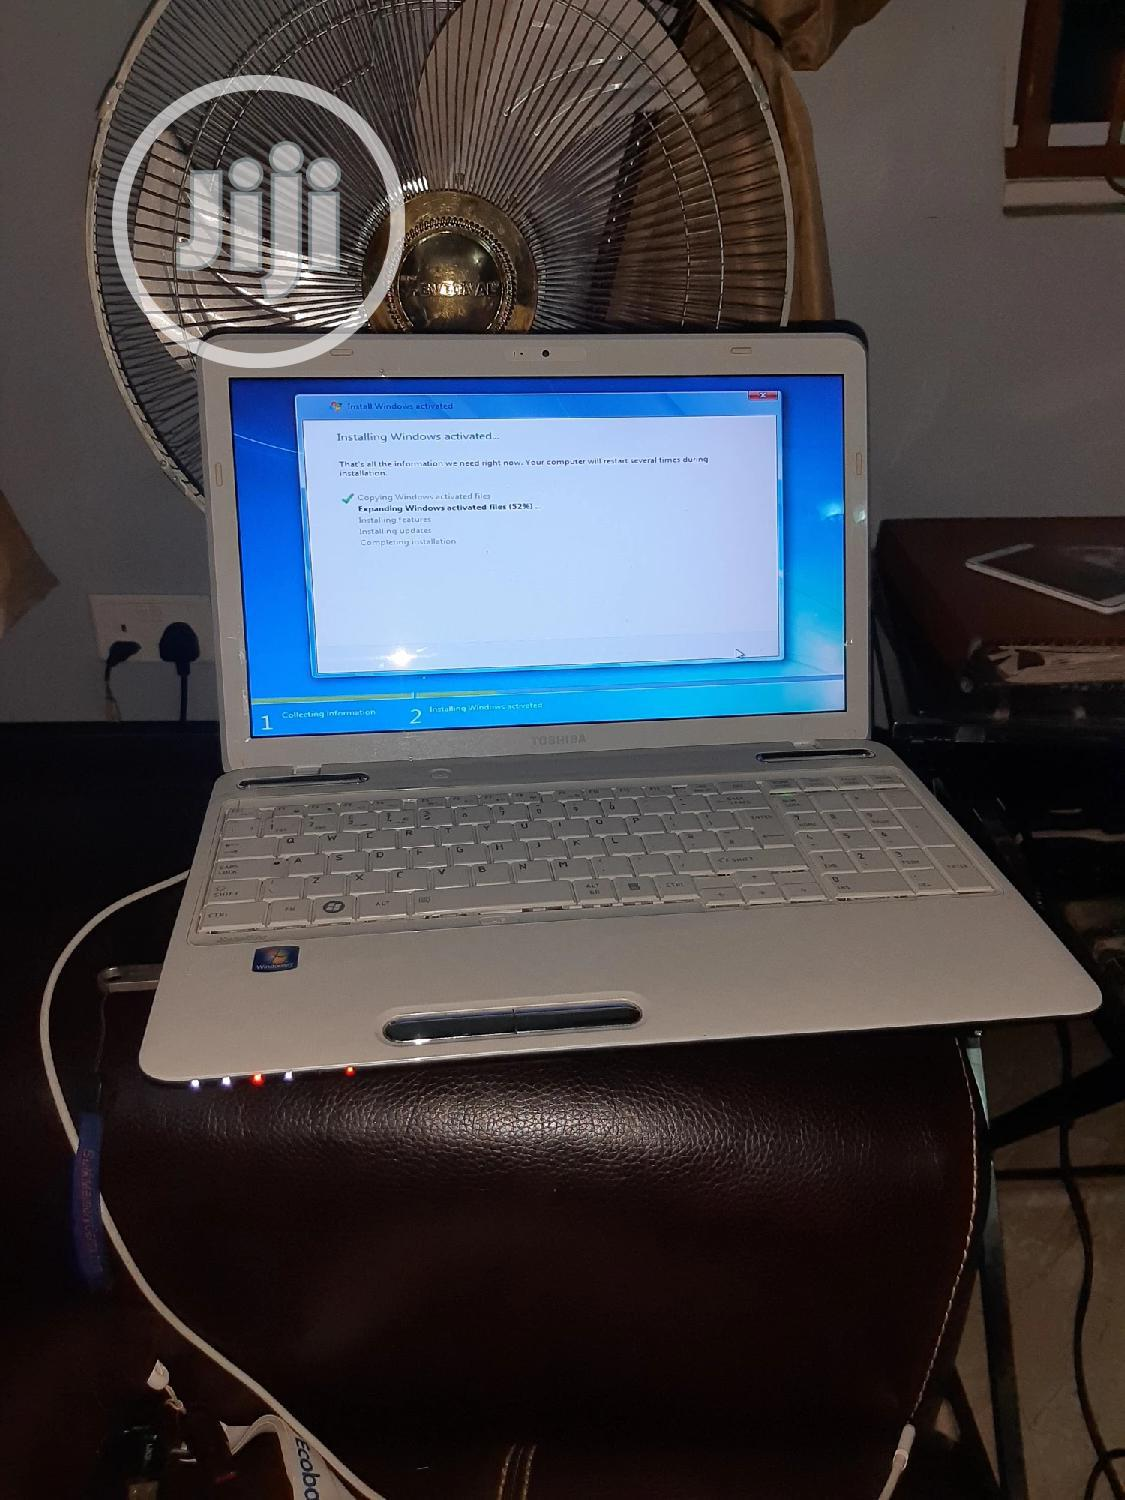 Laptop Toshiba Satellite C850 4GB AMD HDD 250GB   Laptops & Computers for sale in Wuse, Abuja (FCT) State, Nigeria